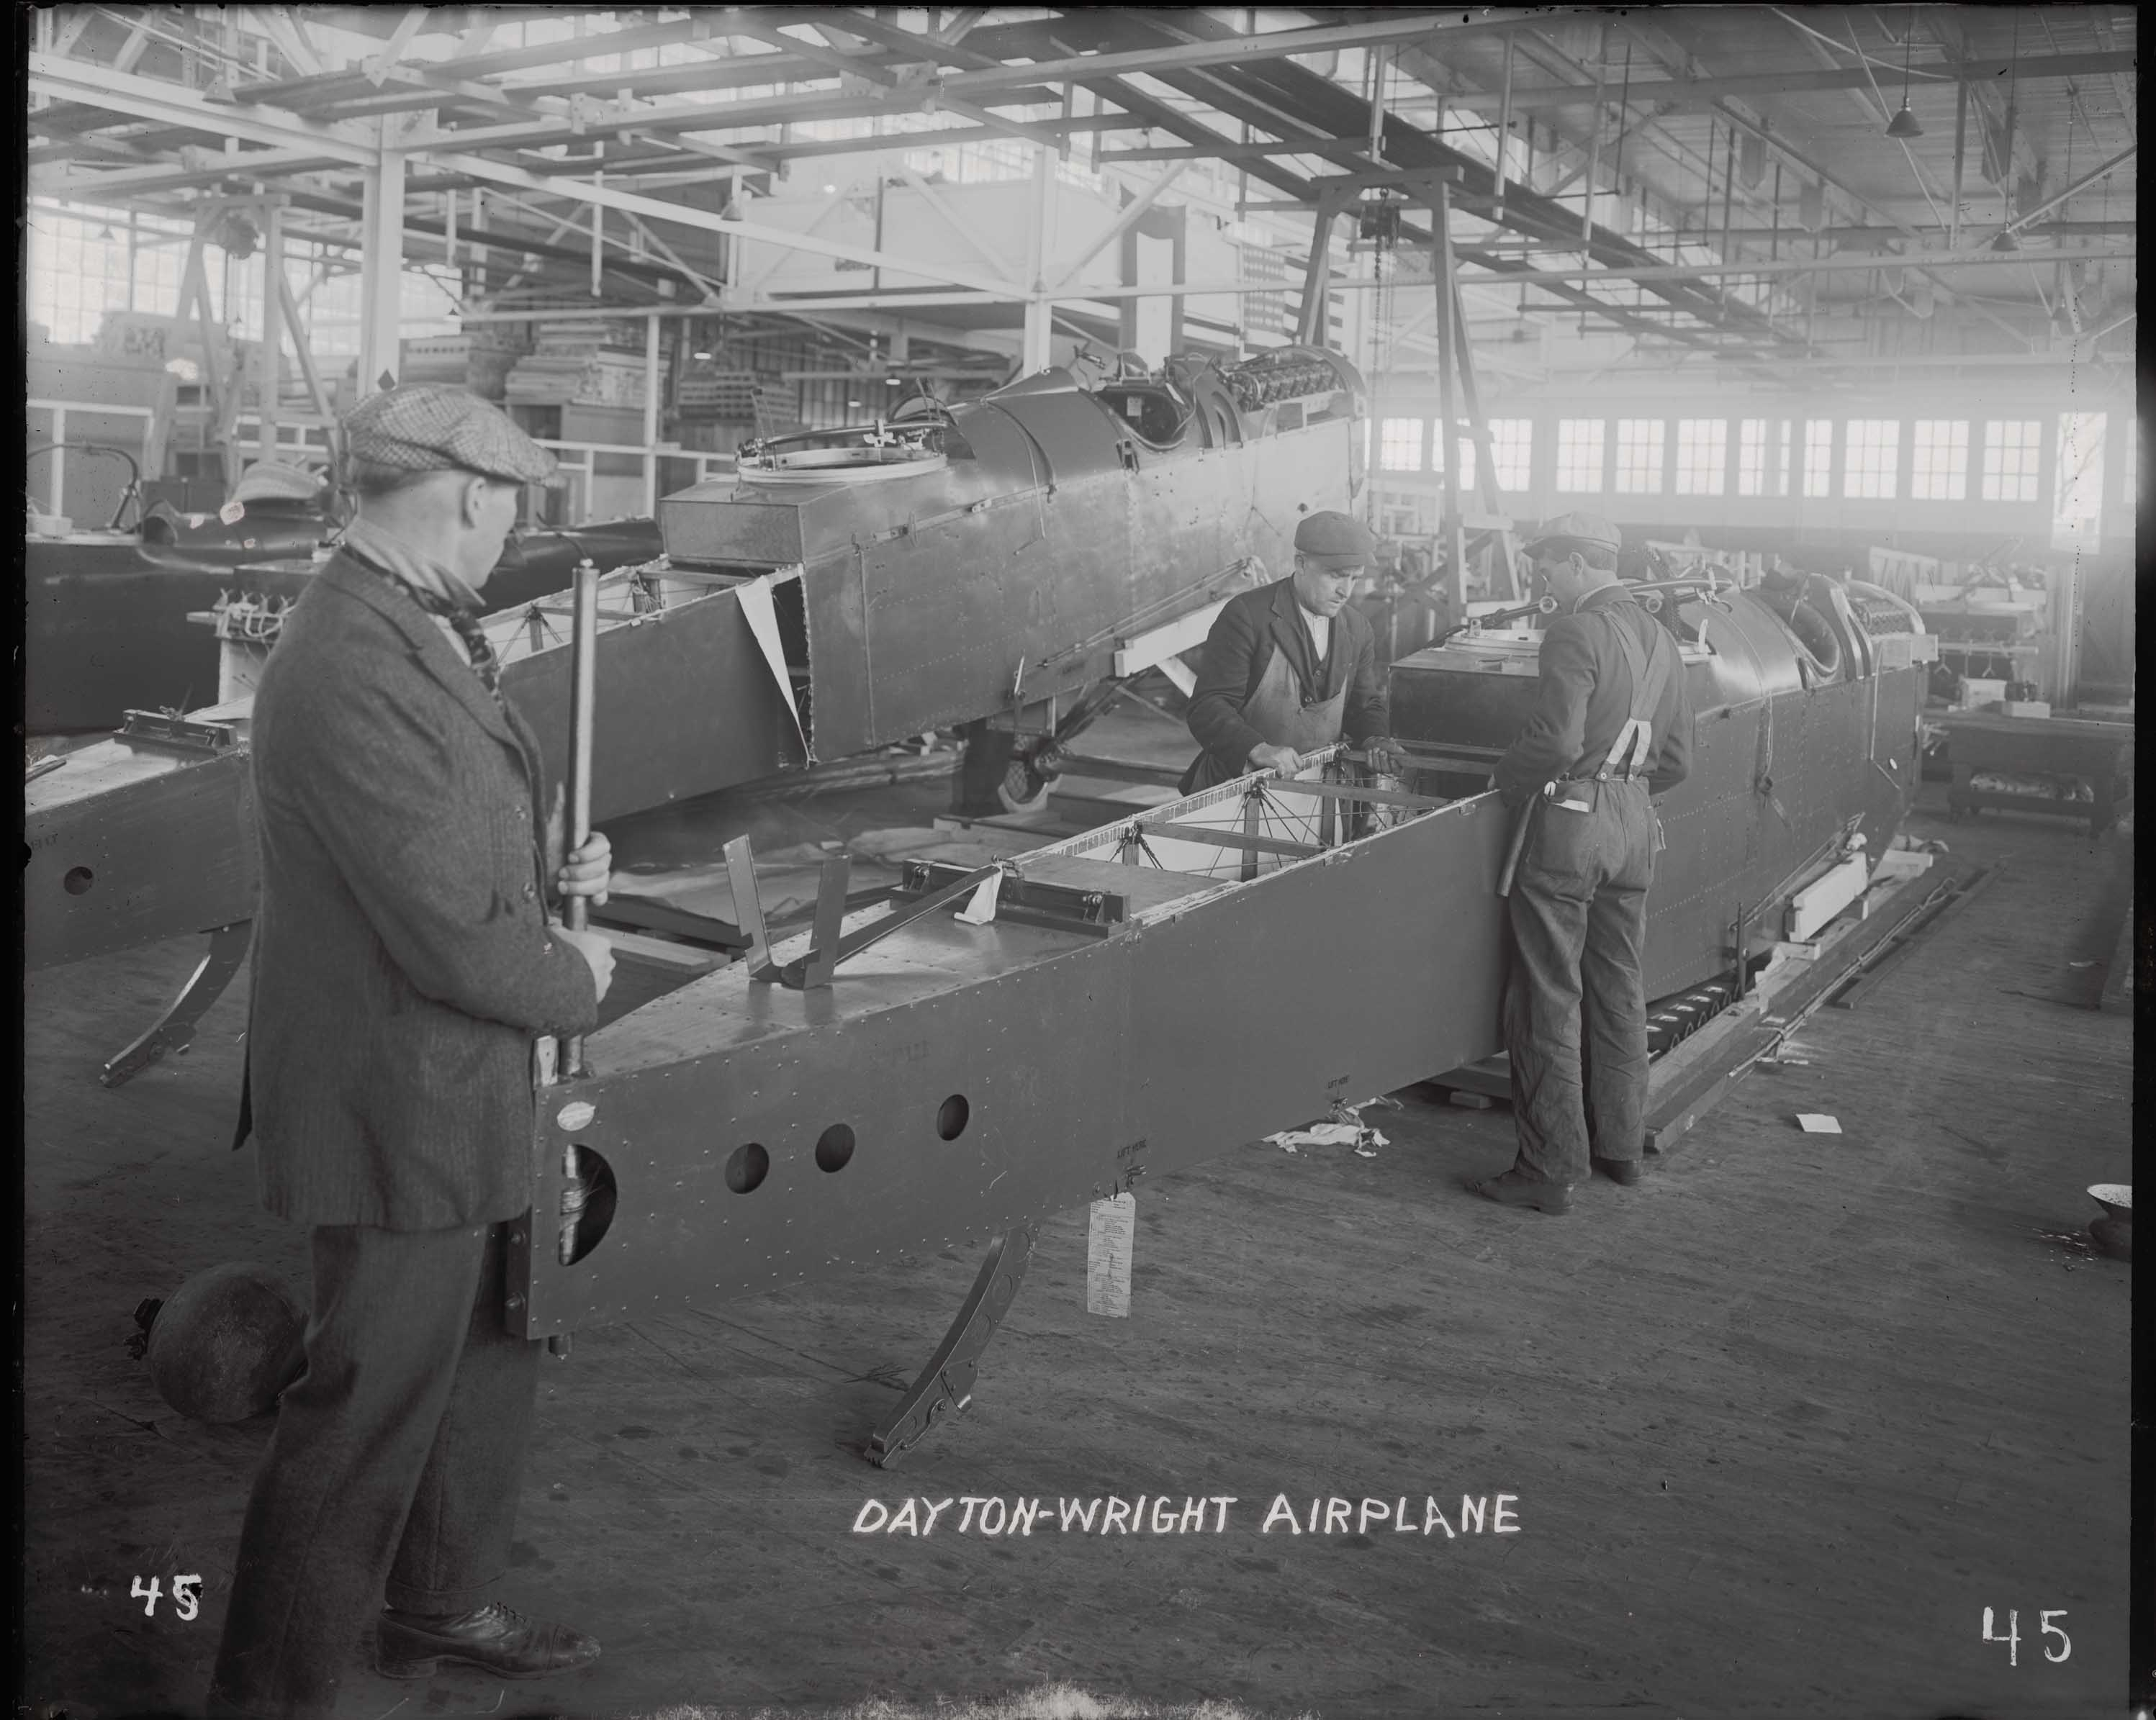 De Havilland DH-4 at Dayton-Wright Airplane Co. (from MS-152)